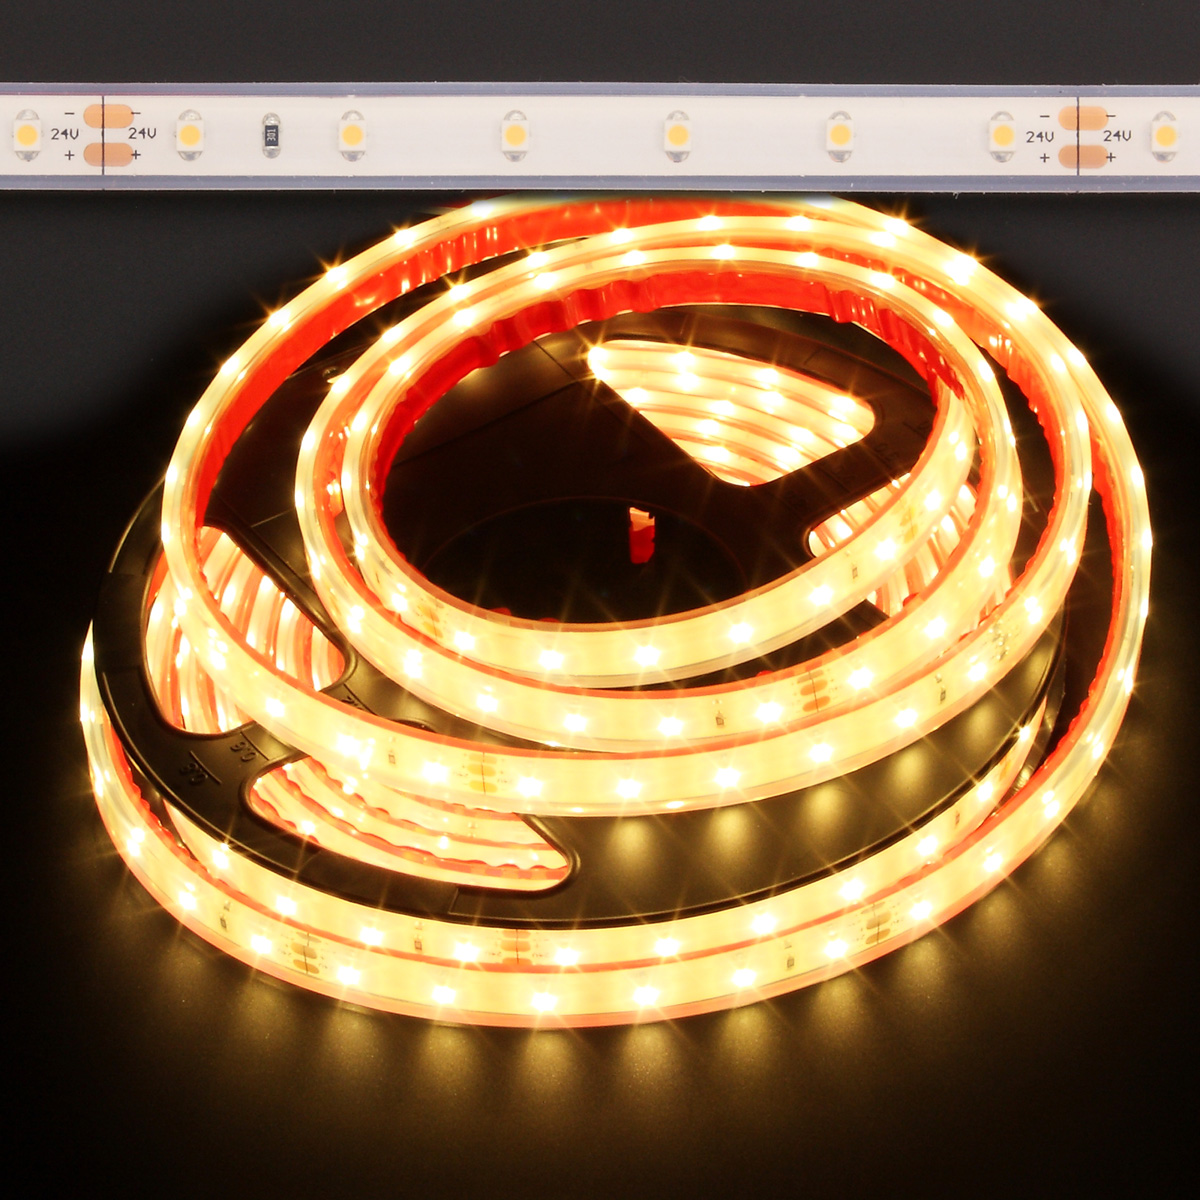 Led Strip Waterproof Candle Light Warm White Waterproof Eco 3528 24w Led Strip Light 2400k